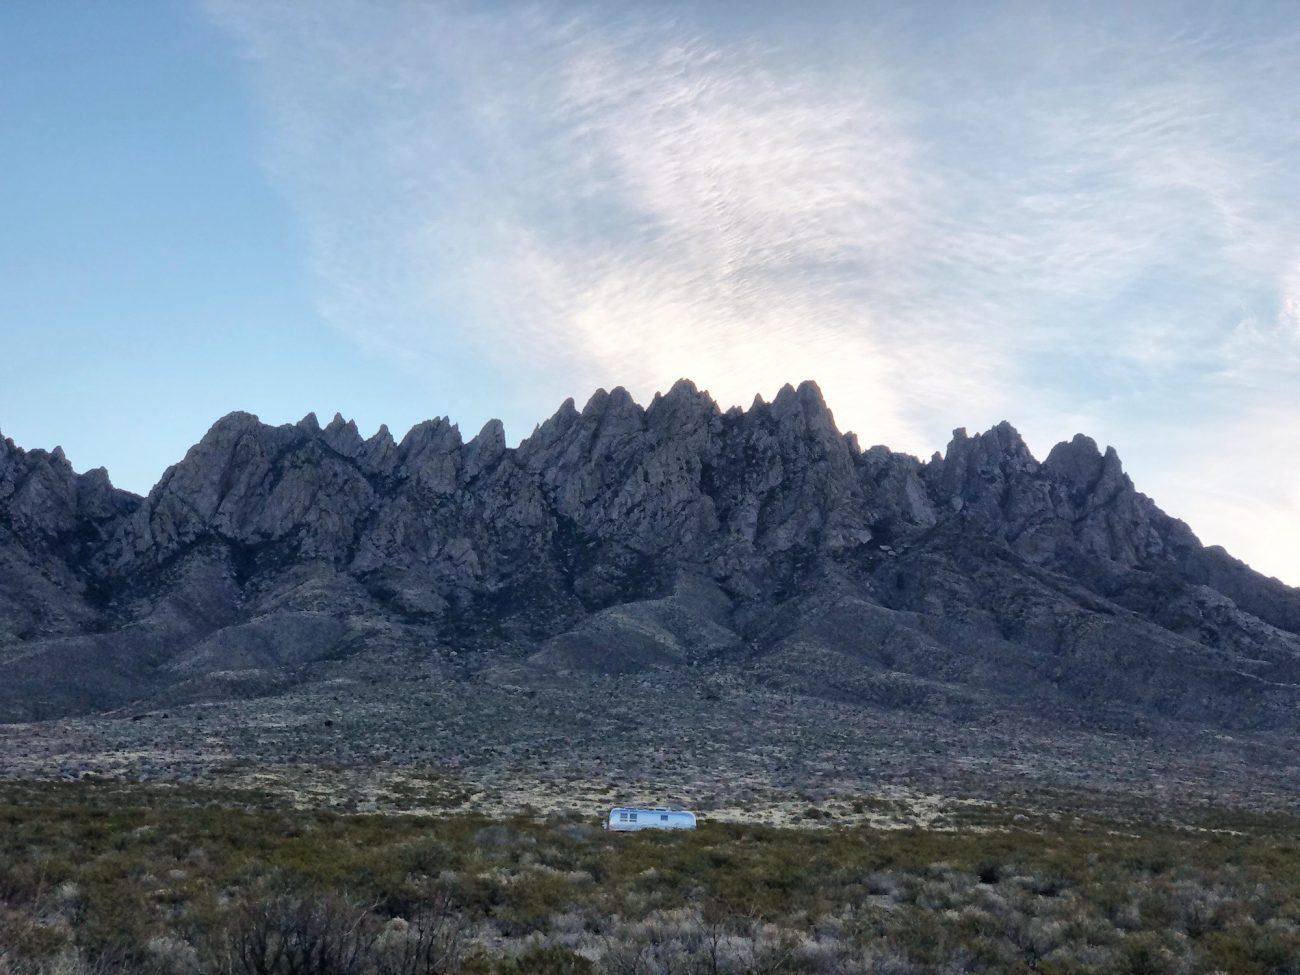 Airstream and the Organ Mountains